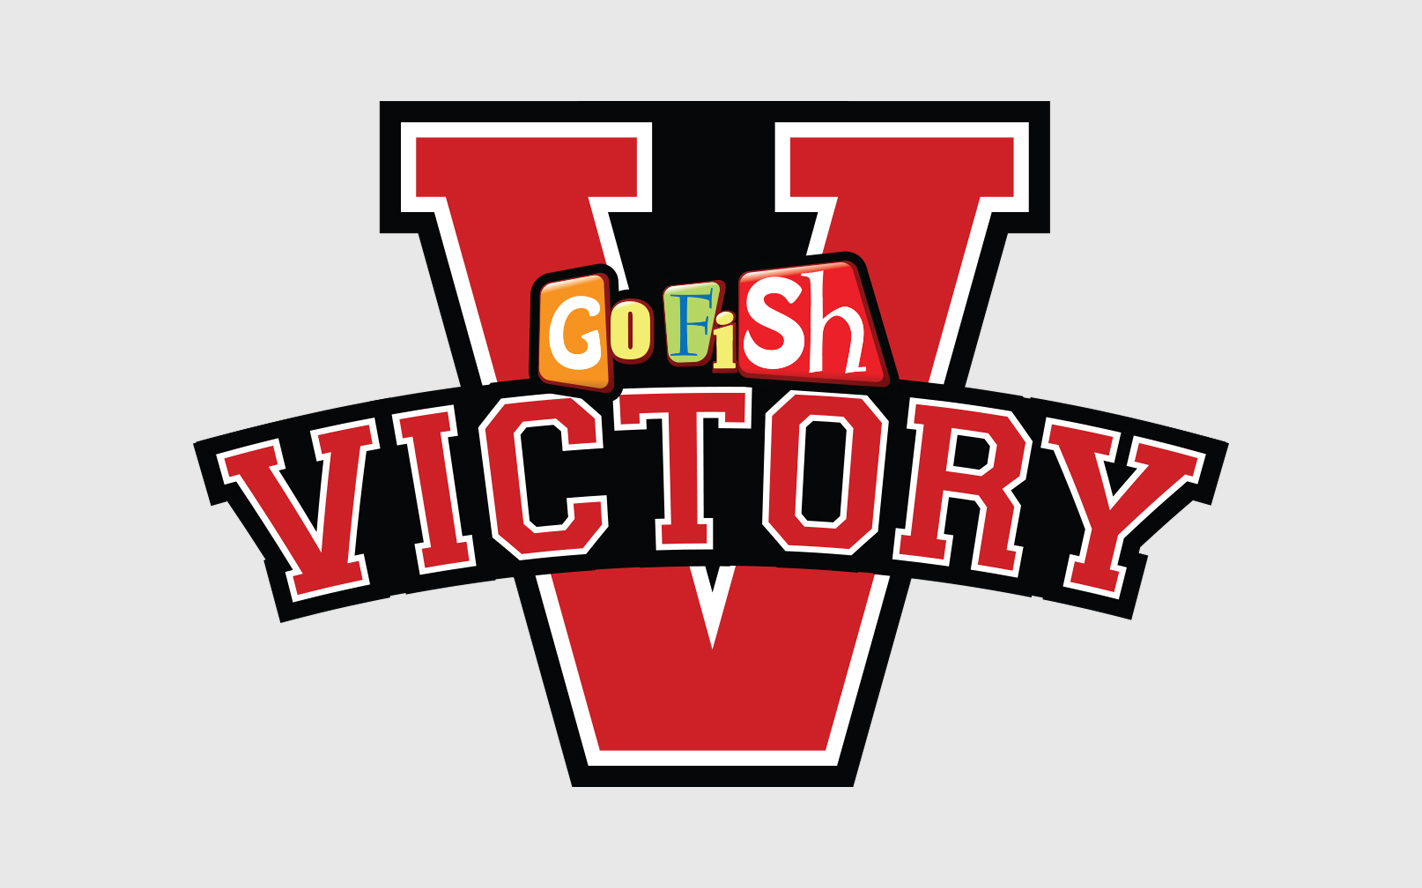 Victory - Learn more